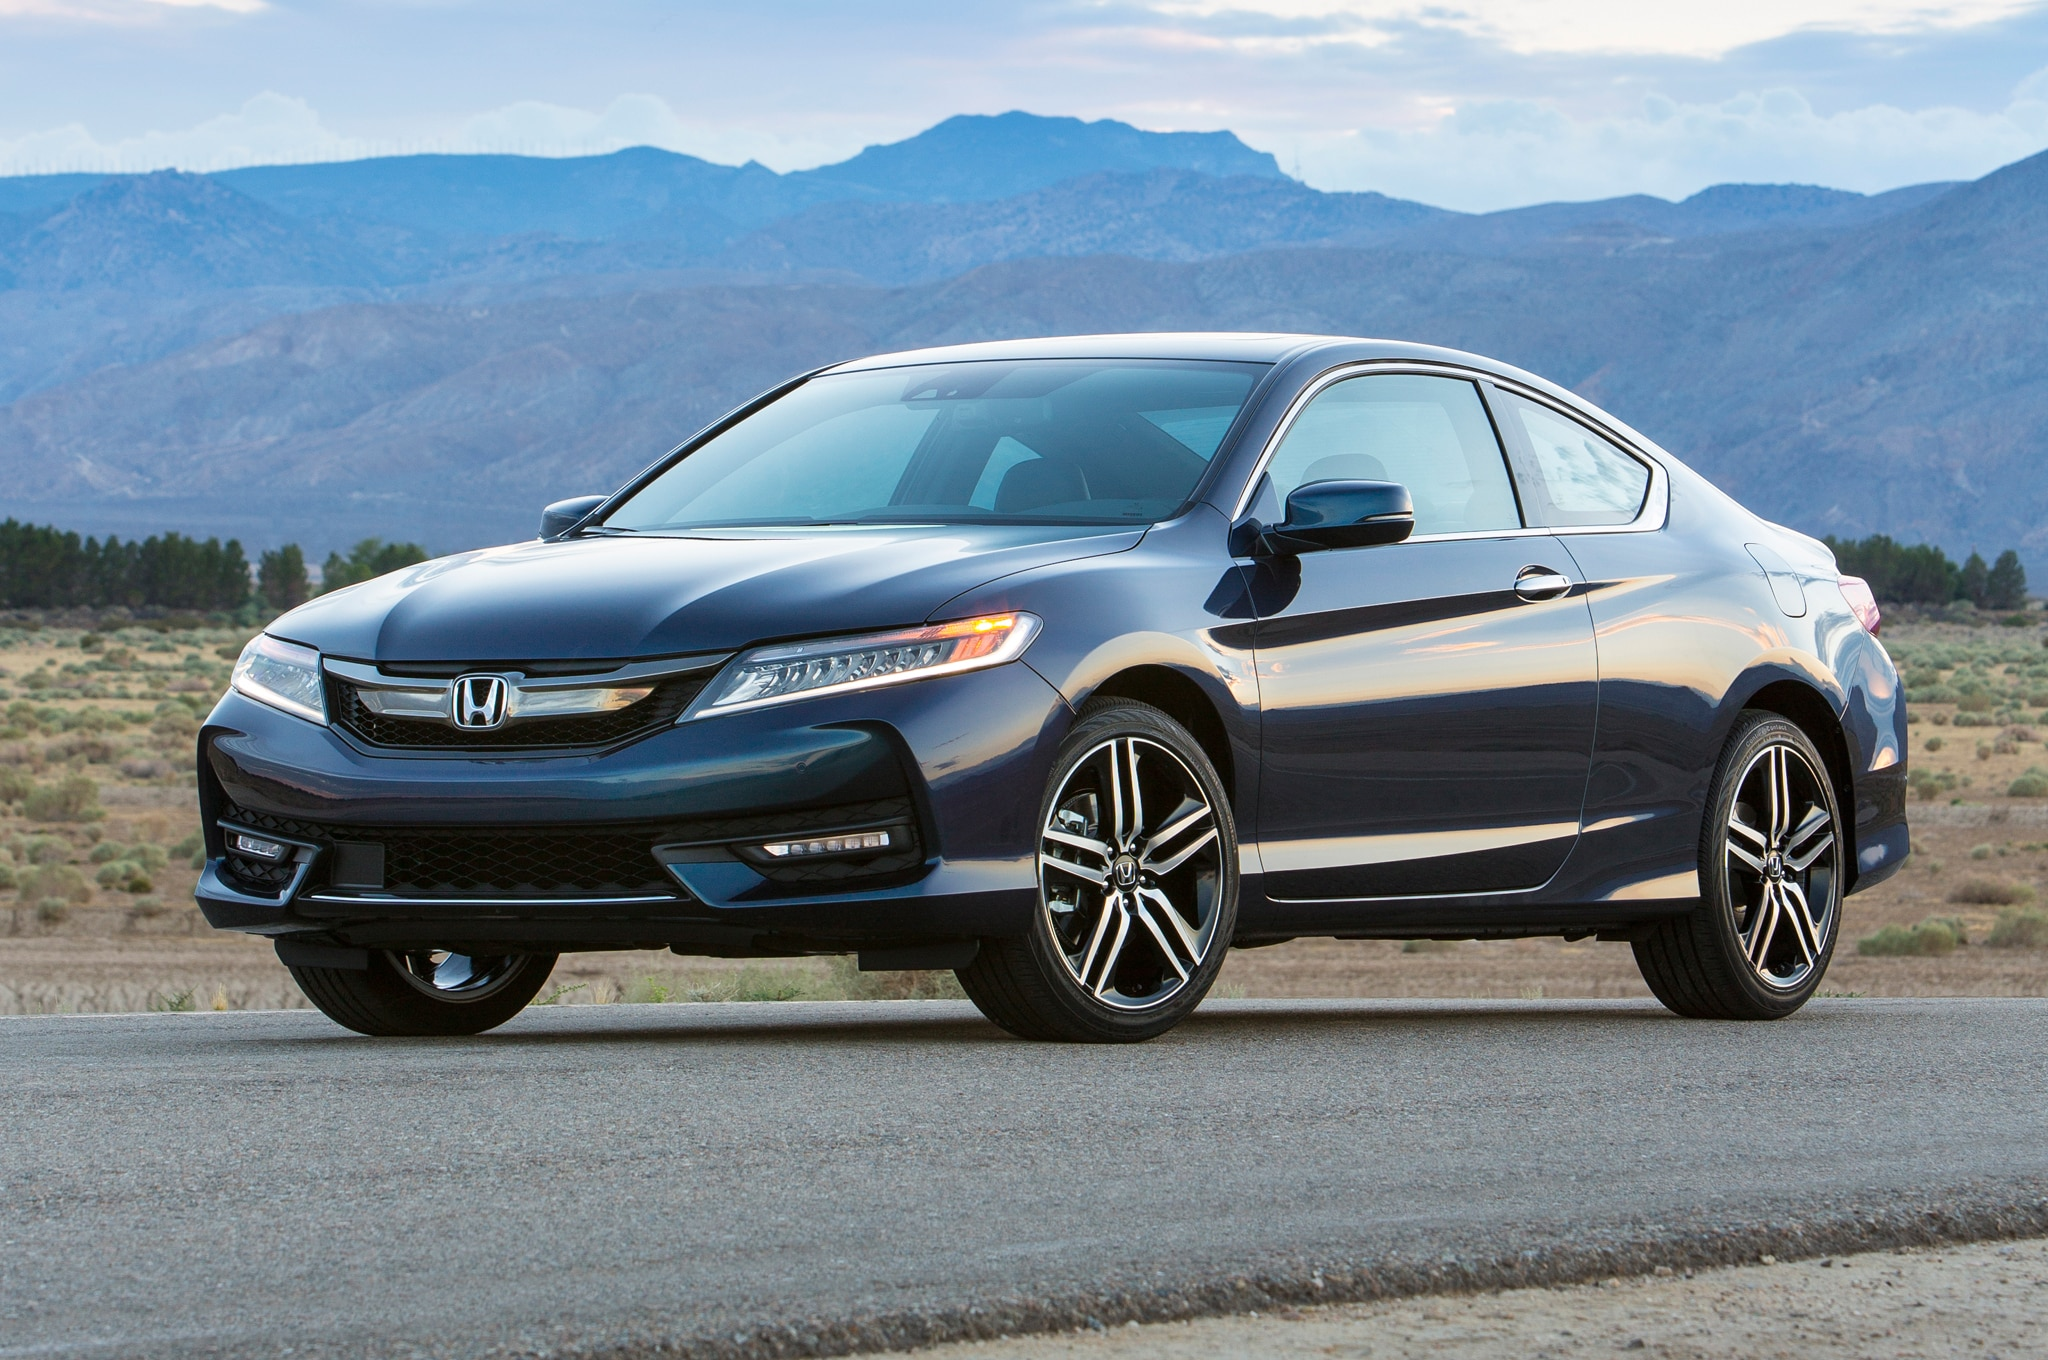 2016 honda accord prices rise 150 950 base price stays the same. Black Bedroom Furniture Sets. Home Design Ideas